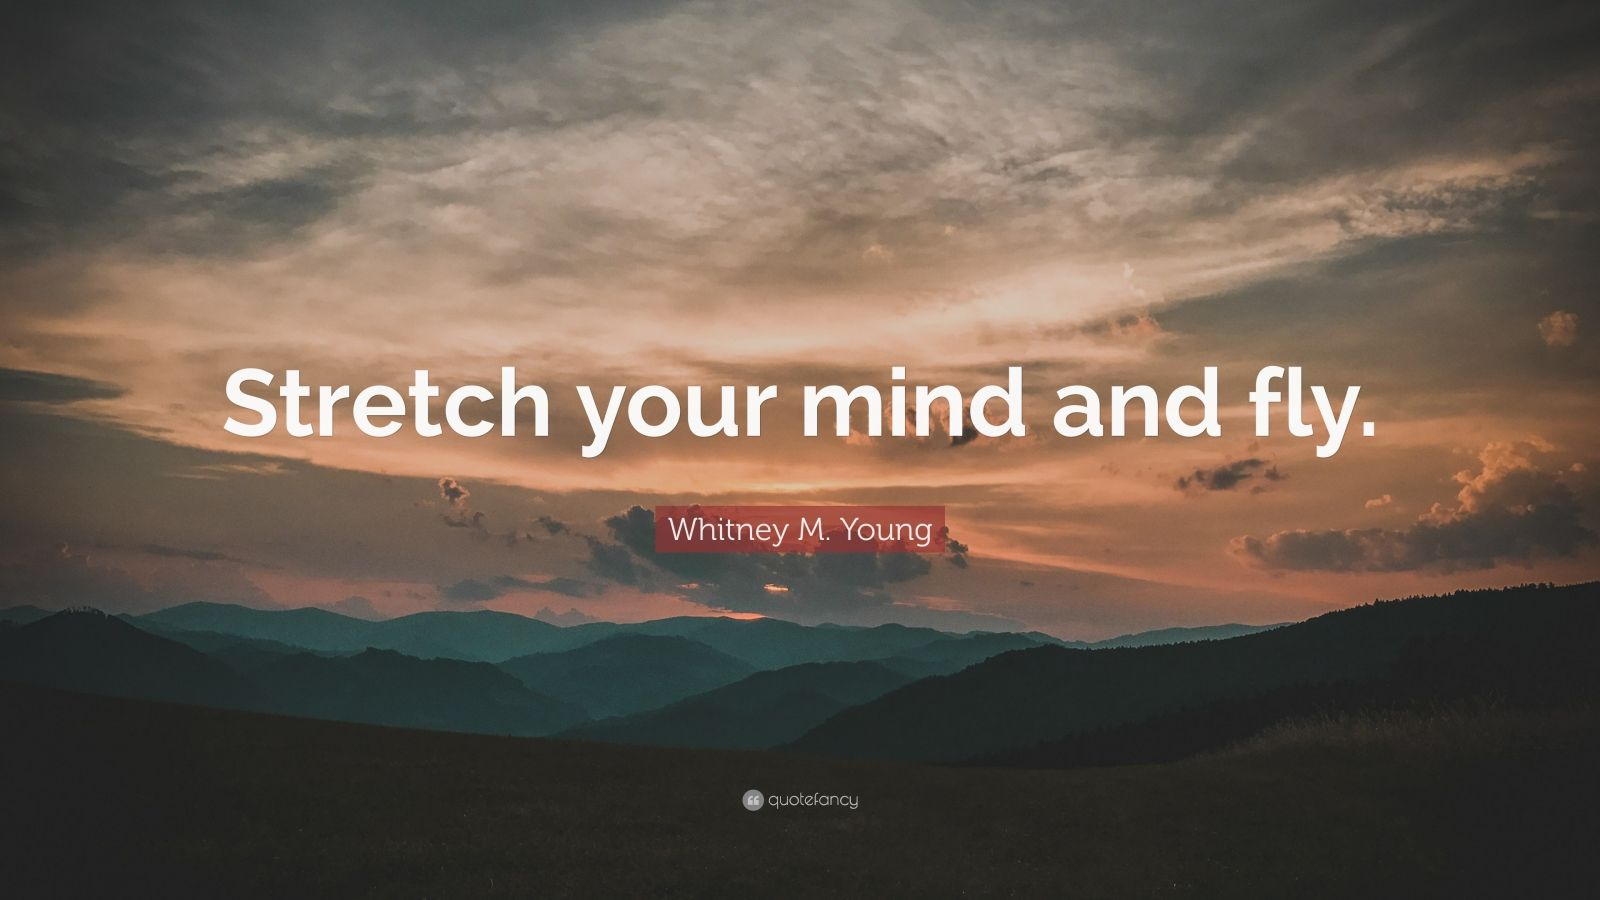 Whitney M Young Quotes 14 Wallpapers Quotefancy